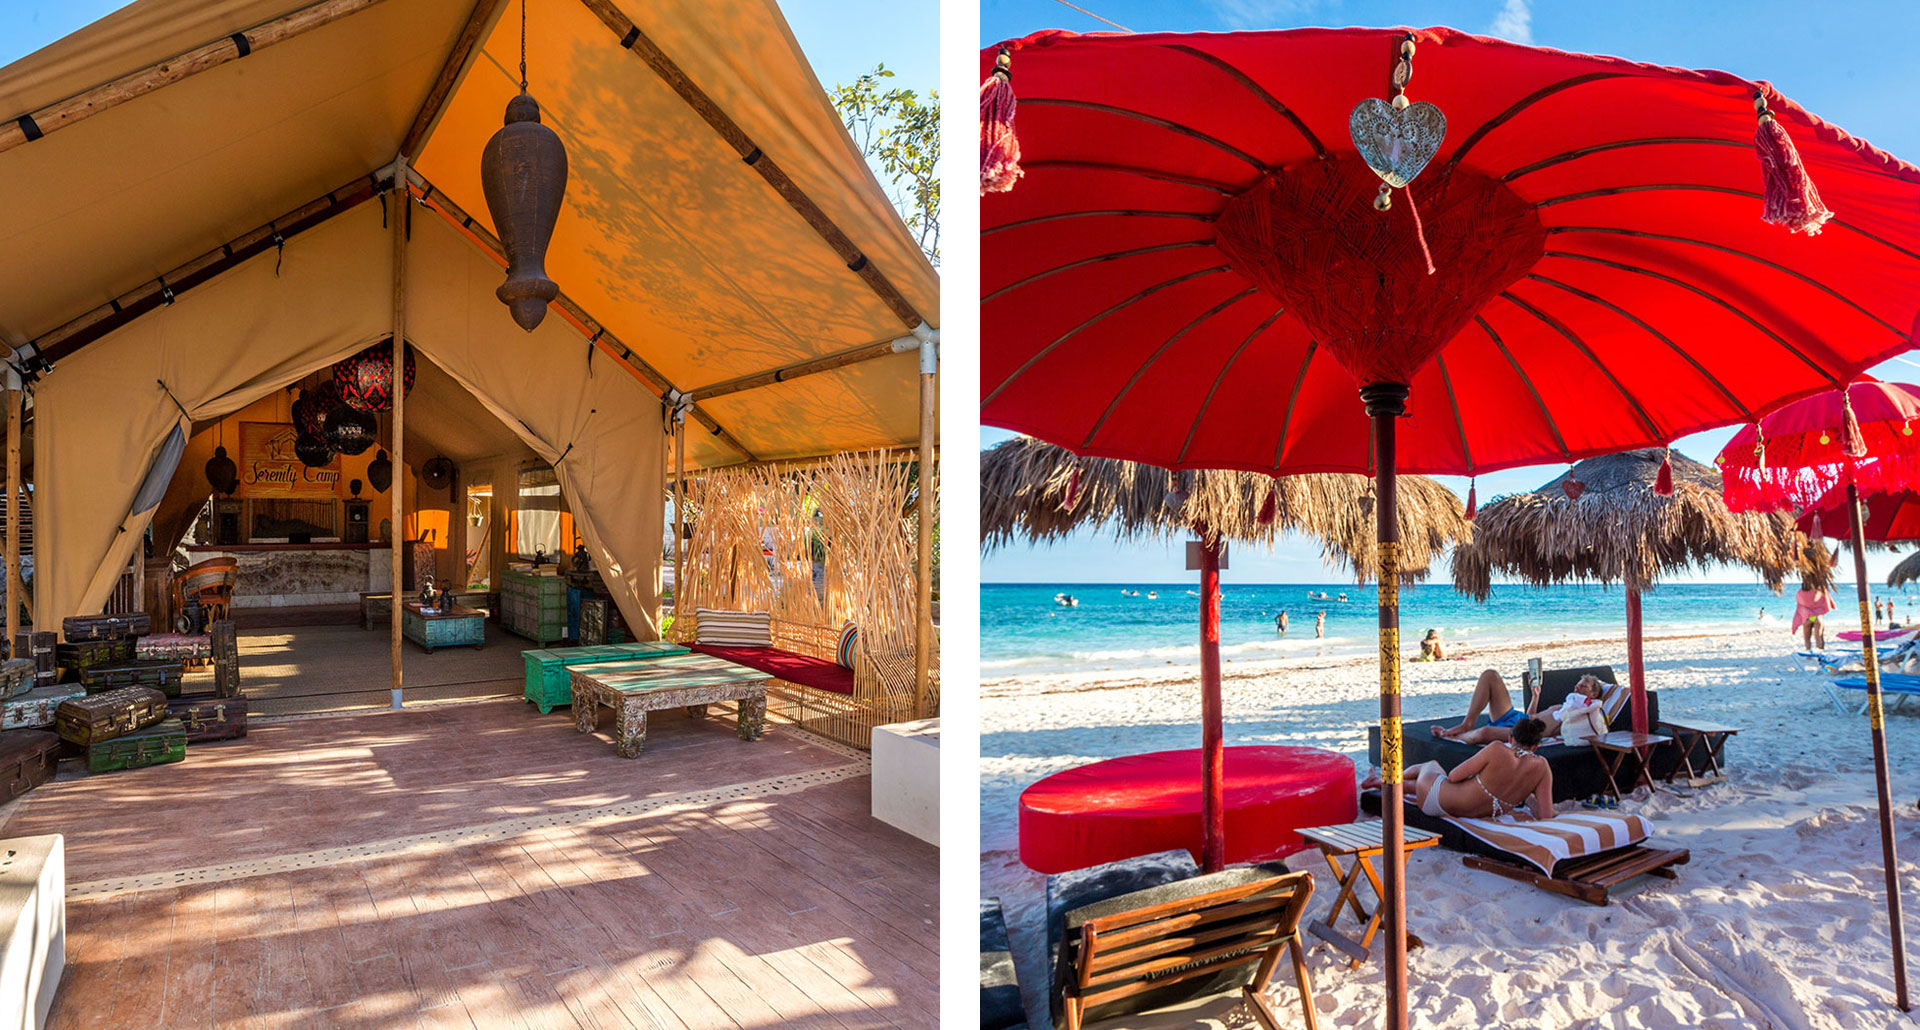 Serenity Eco Luxury Tented Camp - boutique hotel in Playa del Carmen